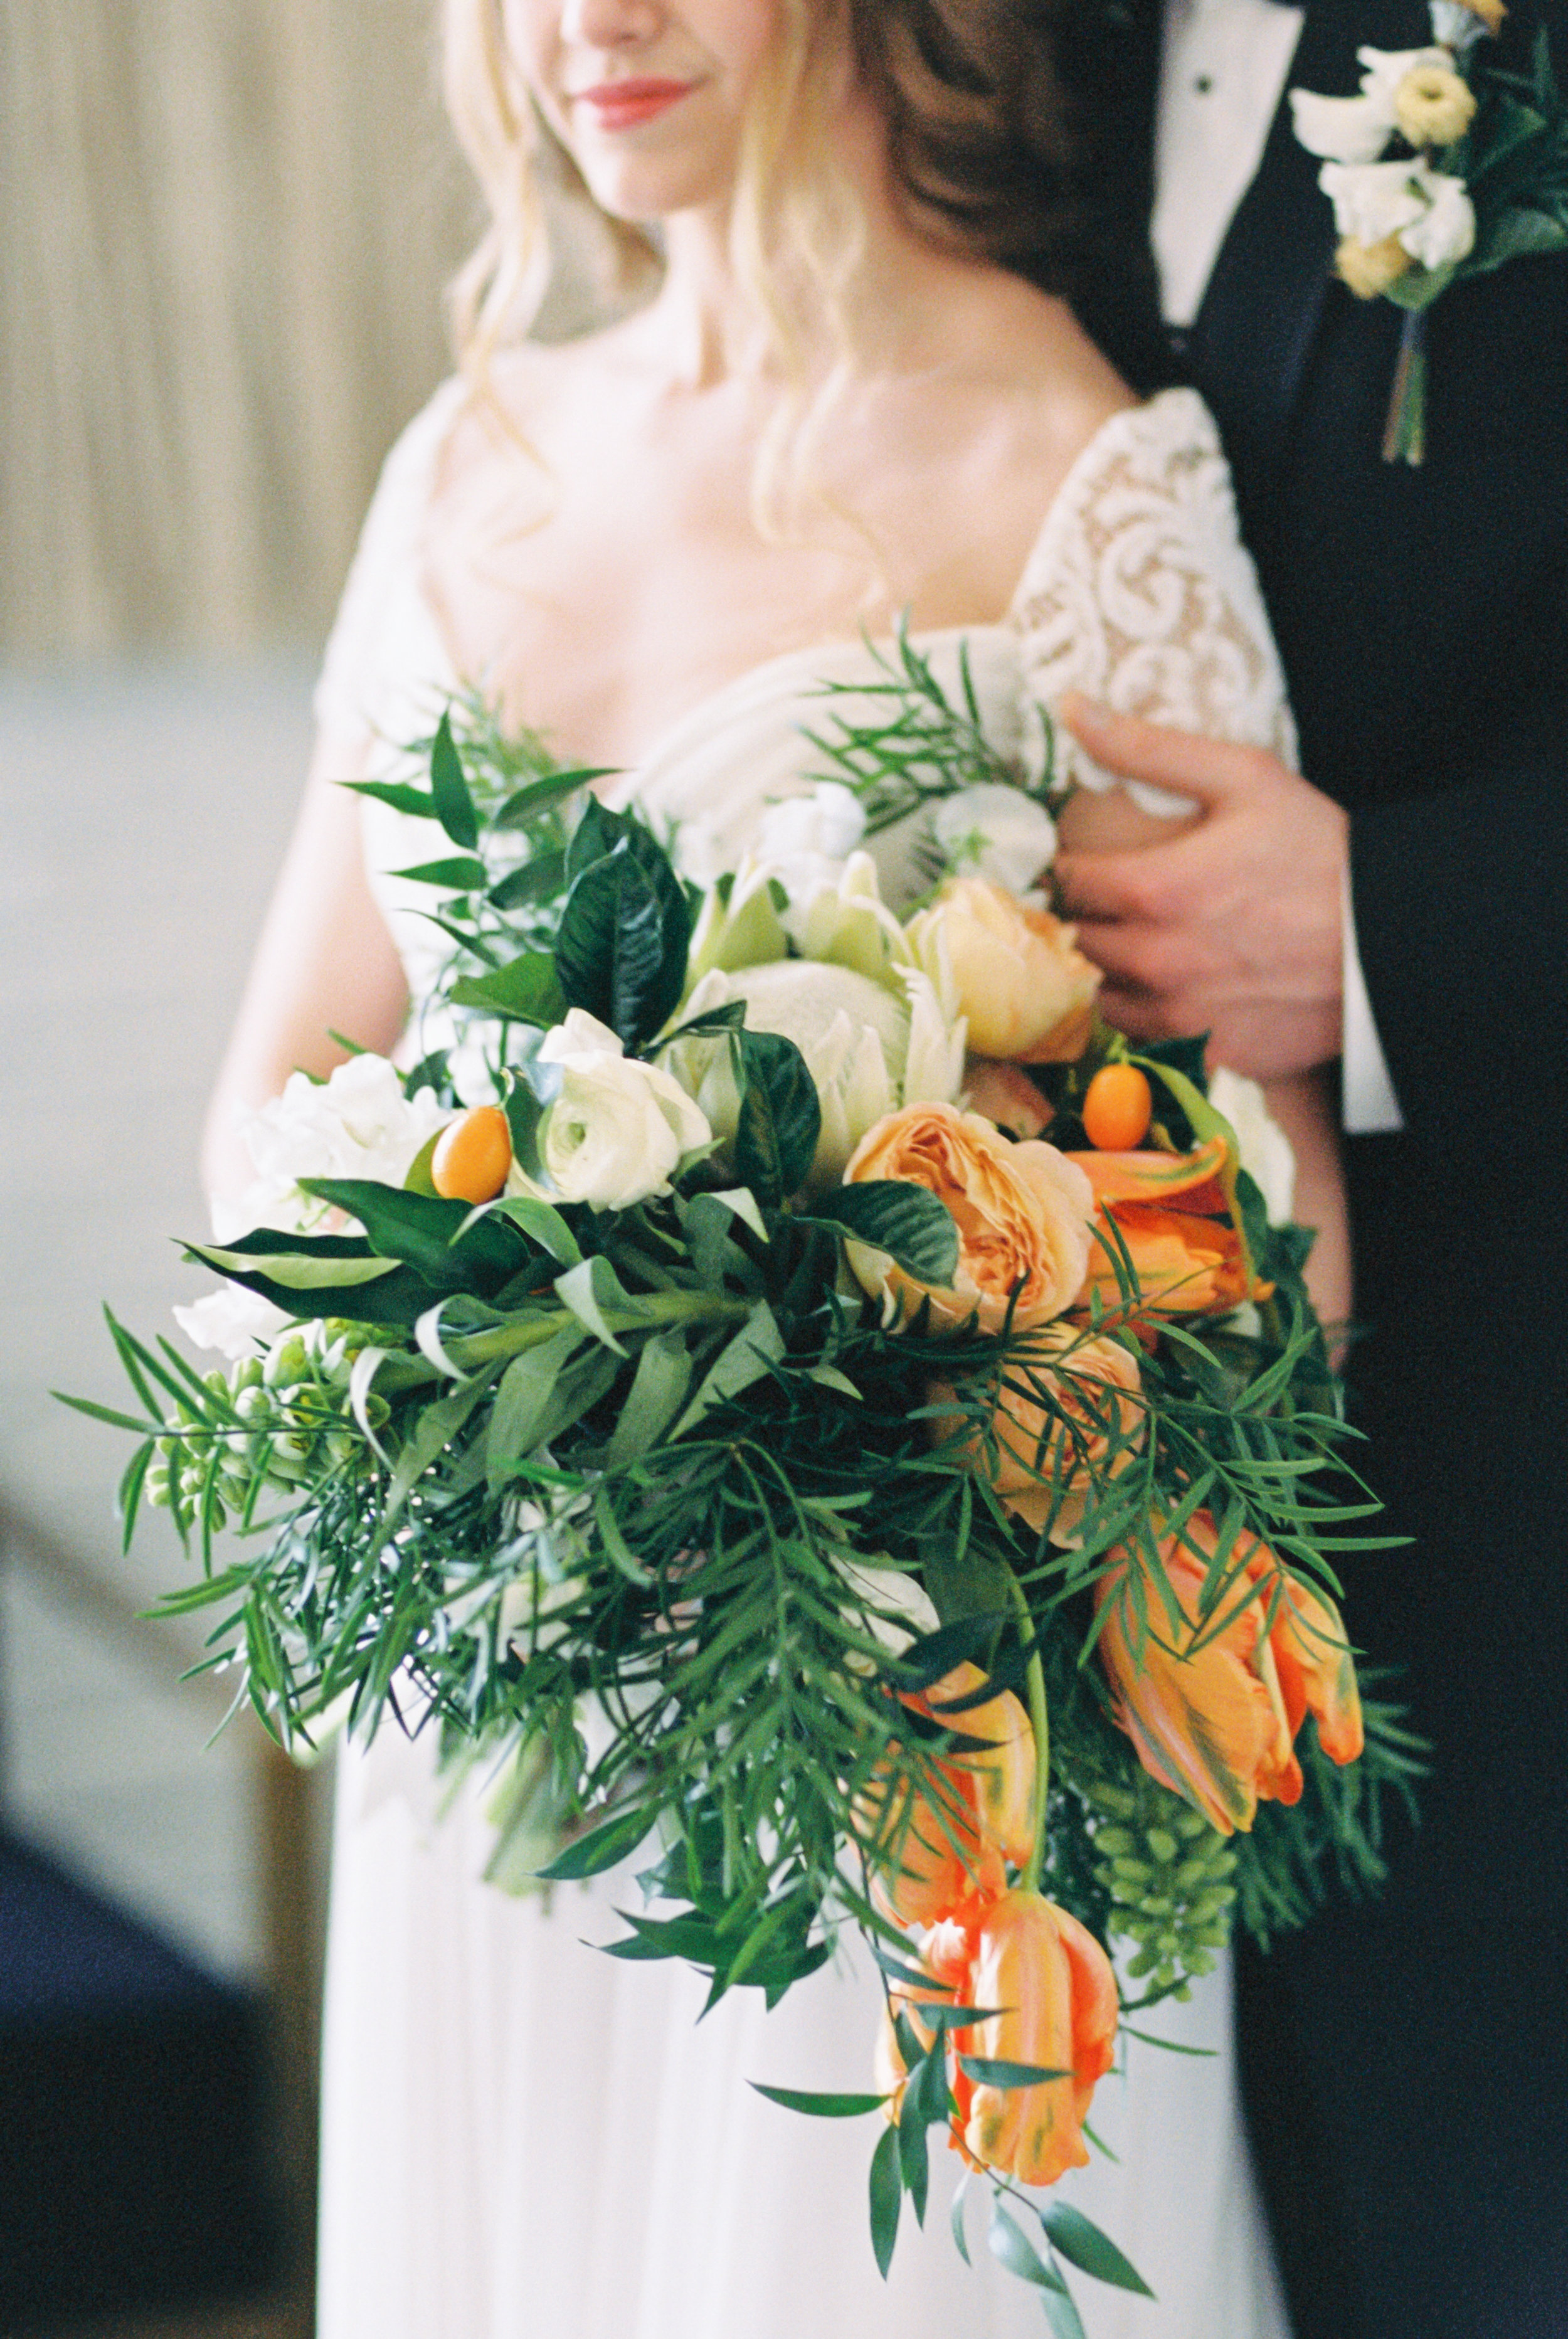 Boho bride and groom pose for wedding photos at modern wedding venue with wedding bouquet for this Chicago wedding styled shoot. Find more wedding inspiration at chitheewed.com!